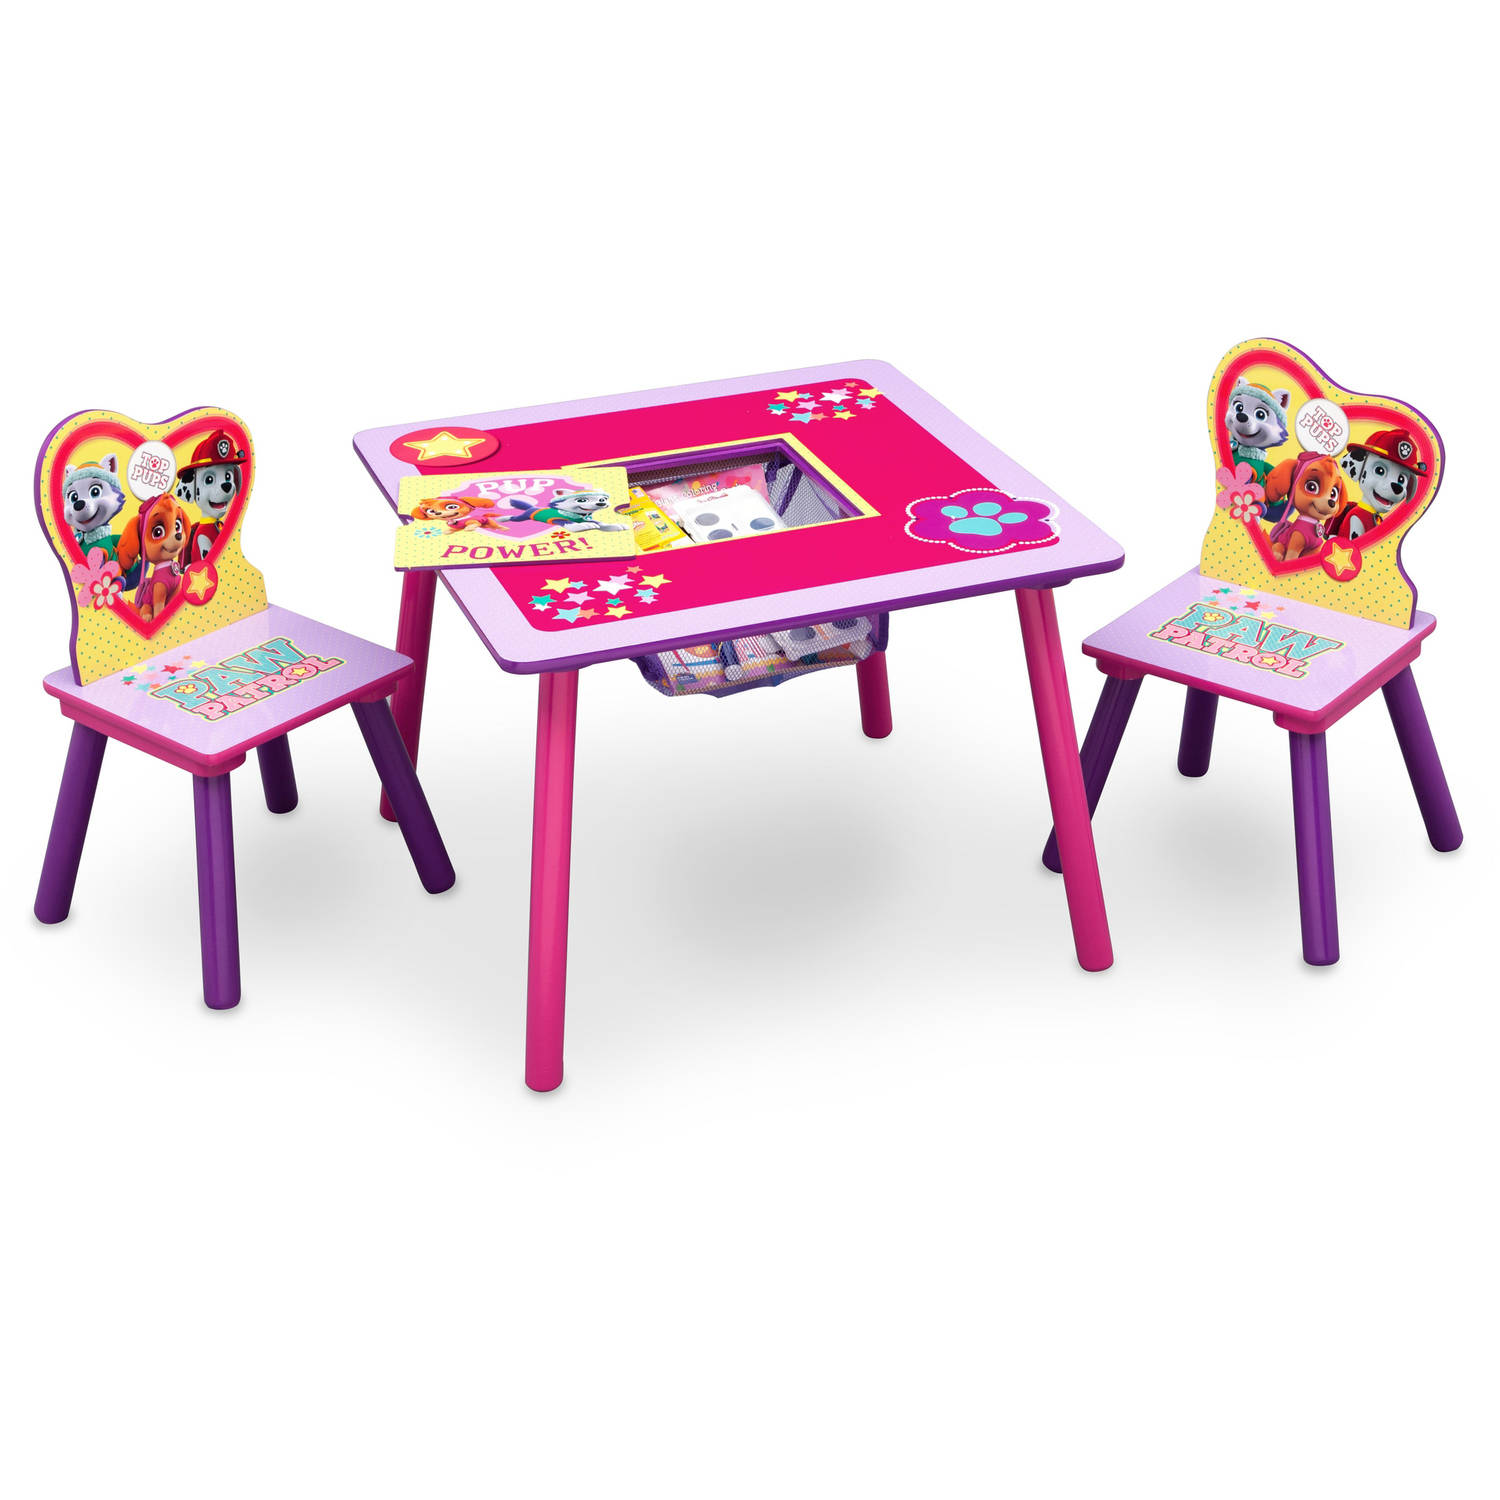 Paw Patrol Skye and Everest Toddler Table and Chair Set with Storage - Walmart.com  sc 1 st  Walmart & Paw Patrol Skye and Everest Toddler Table and Chair Set with ...